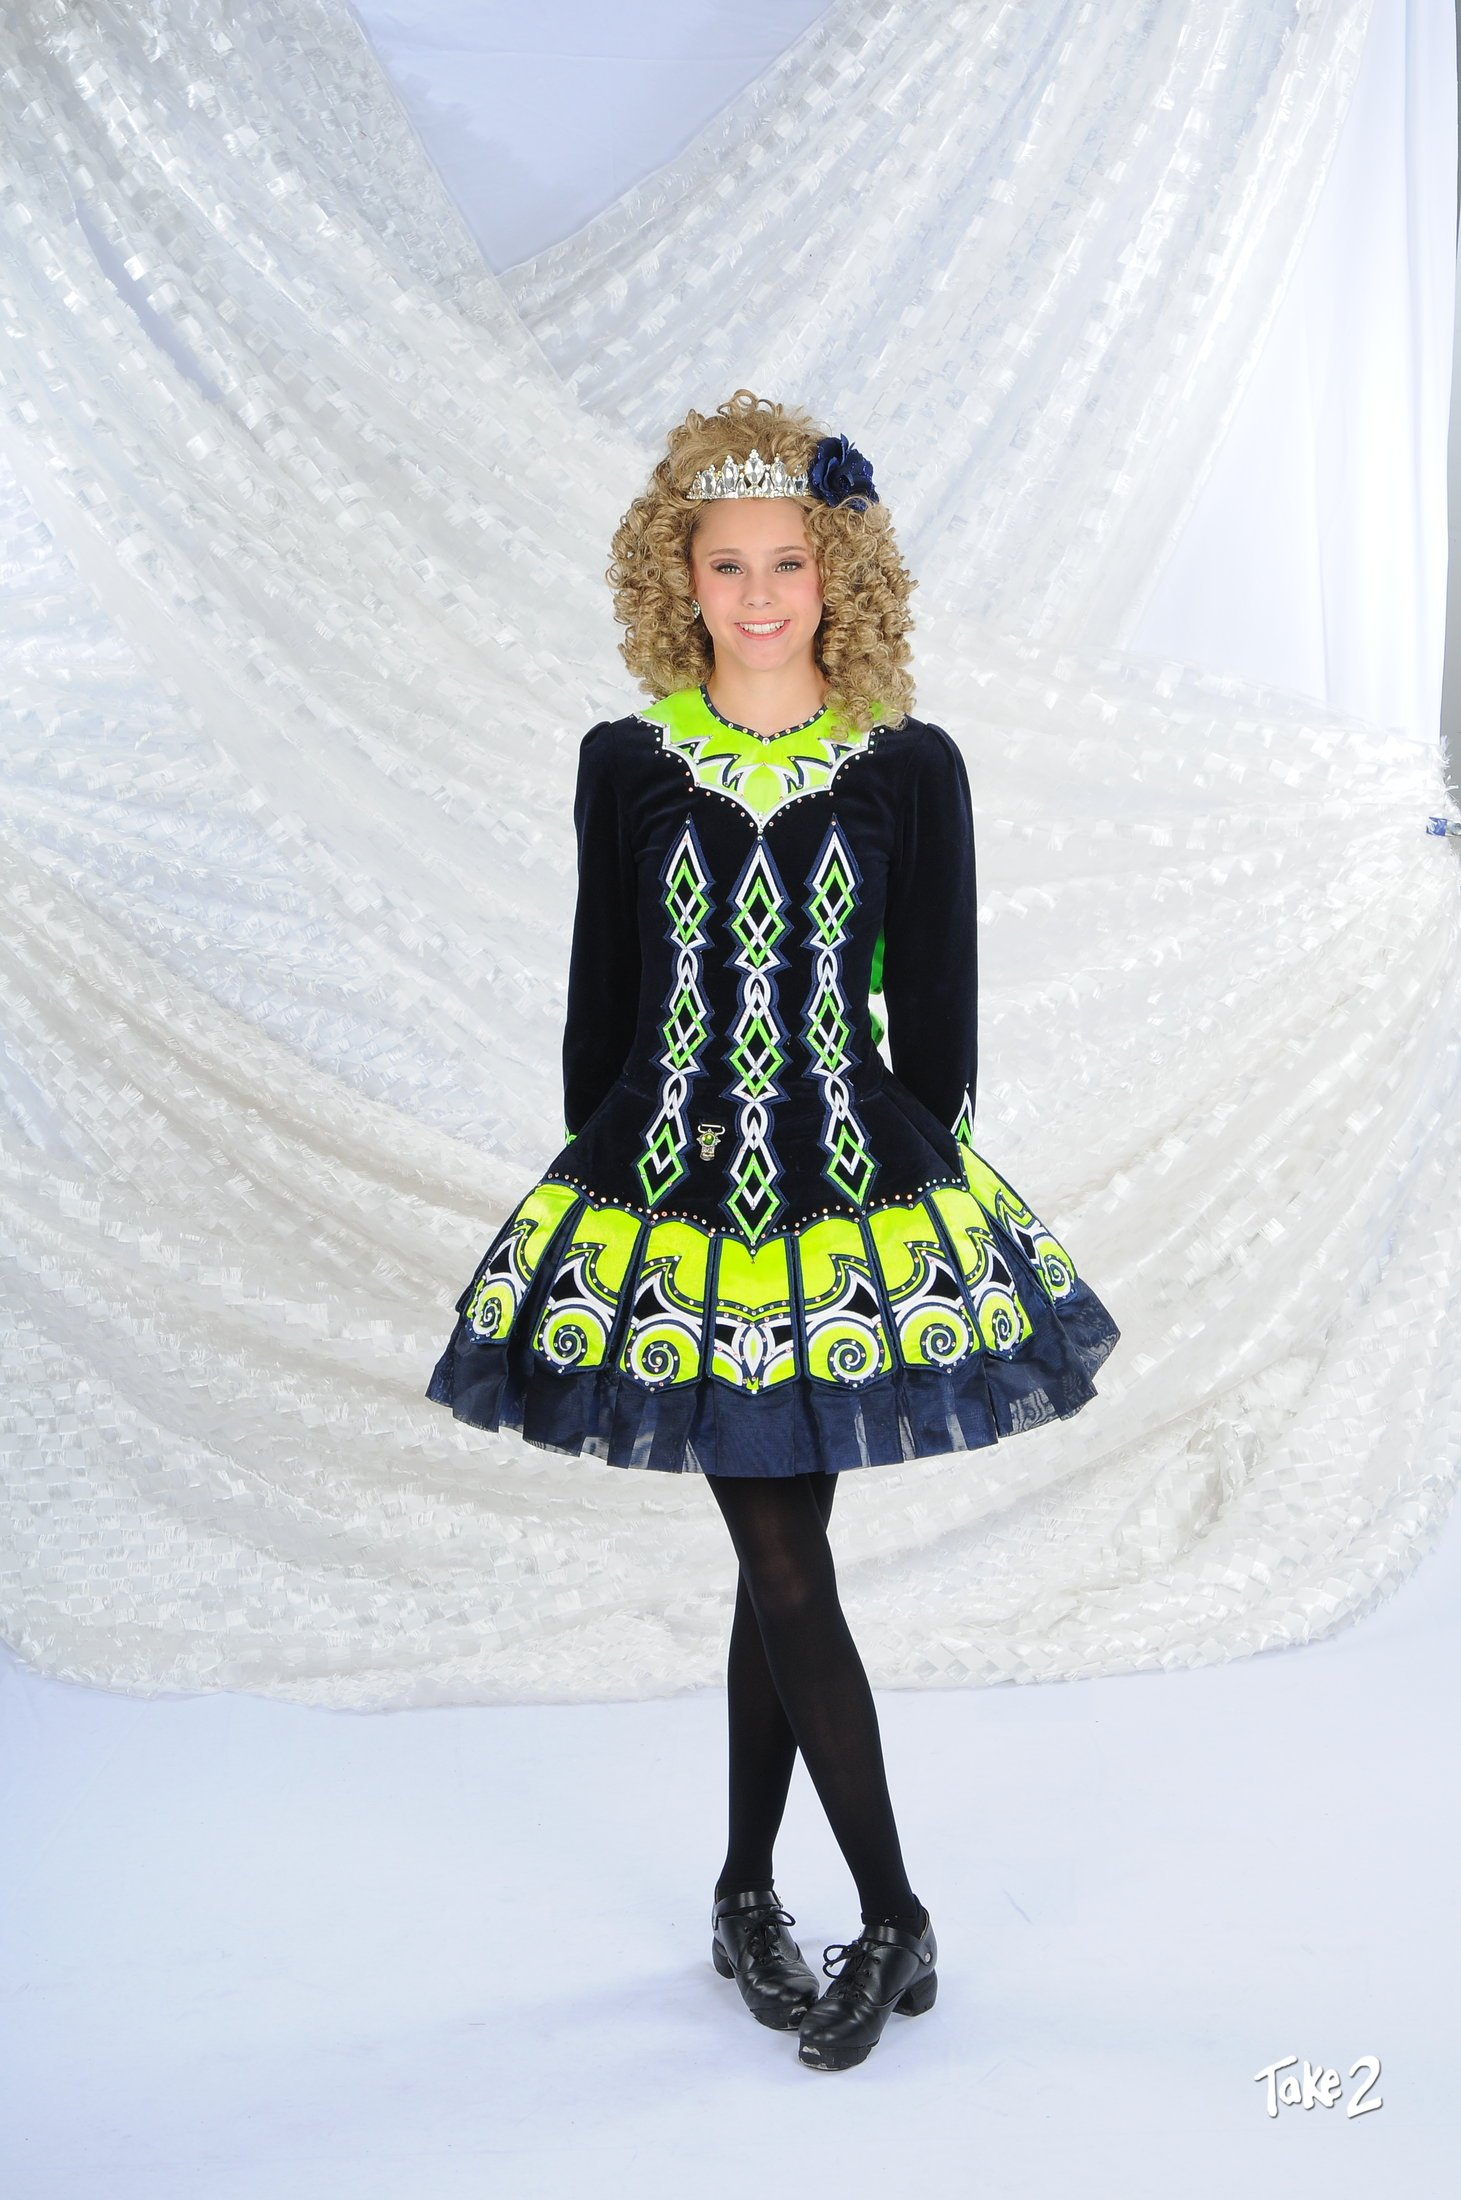 Irish Dancing -I have been a dancer for 10 years with Kathy Nelson, Rose and Sword Academy of Irish Dance and have competed and performed in many events, including retirement and nursing homes and Christmas performances. -